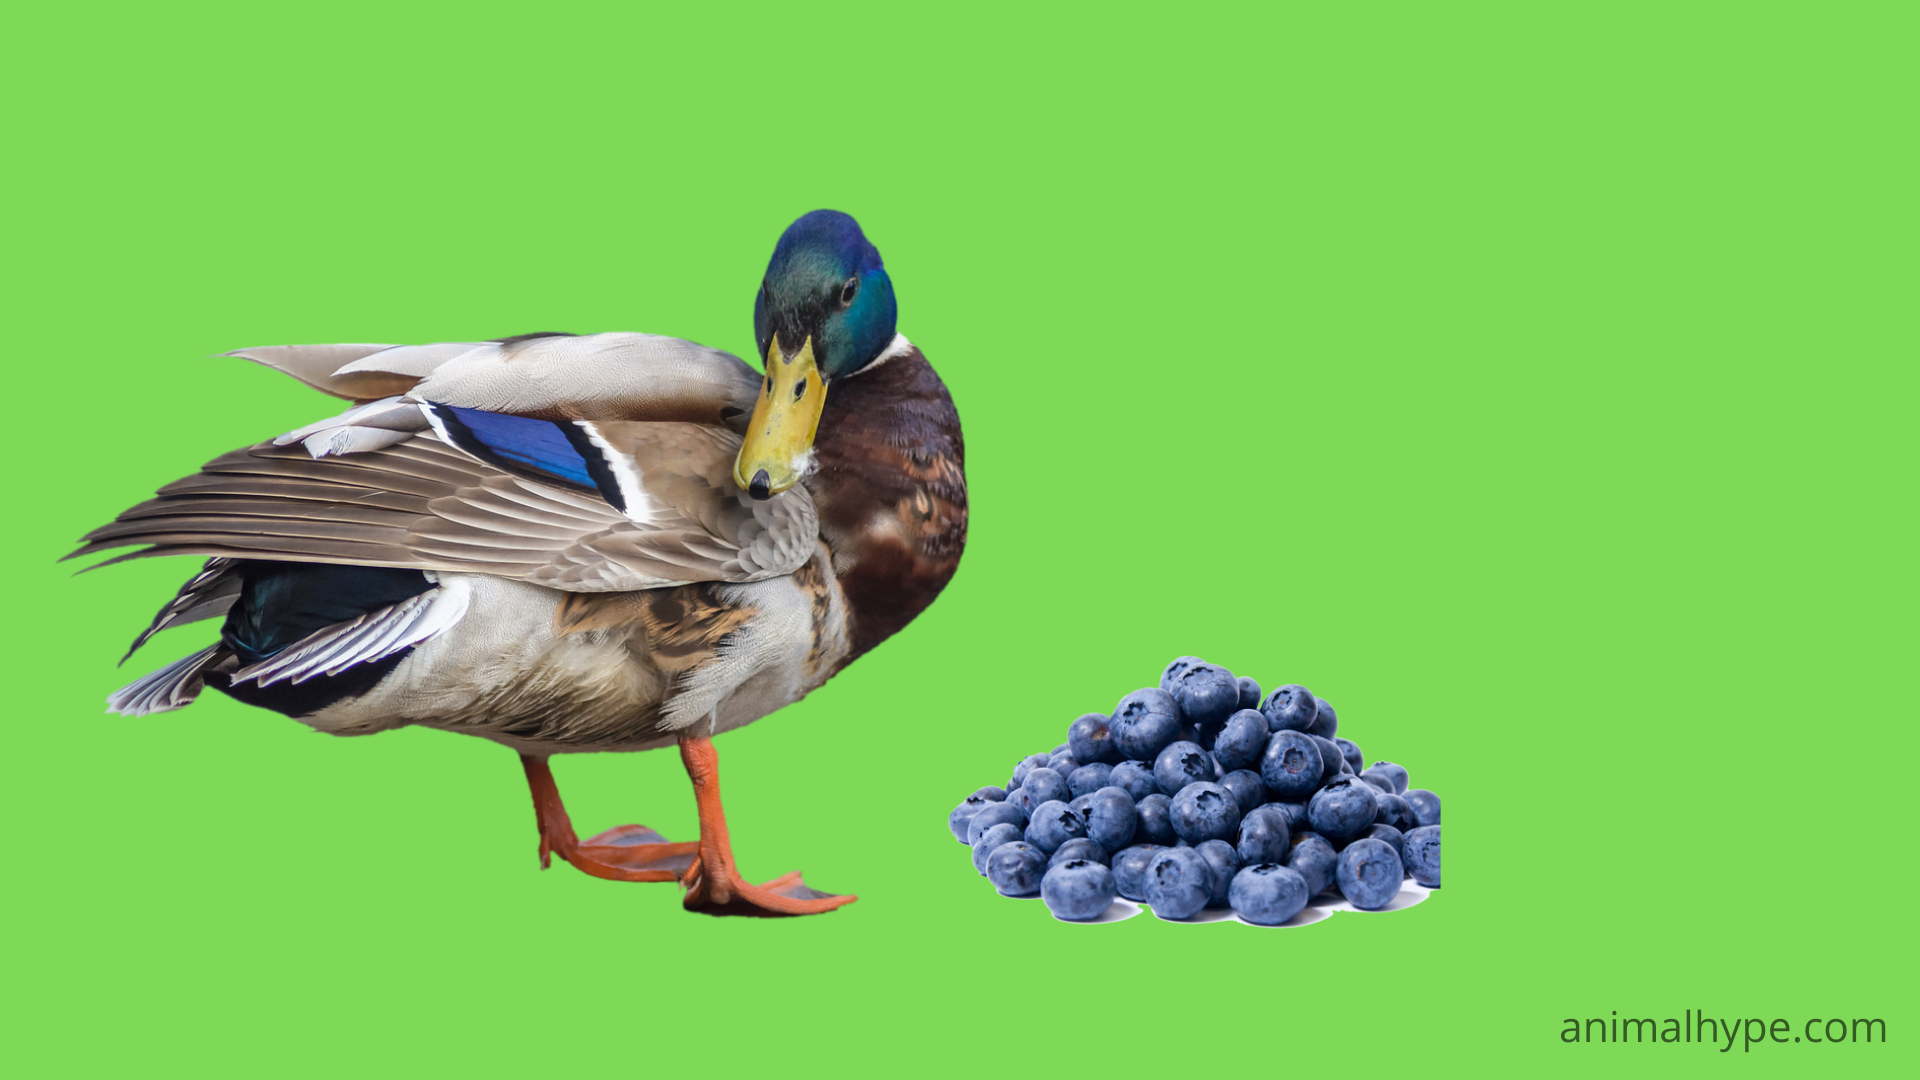 Can Ducks Eat Blueberries